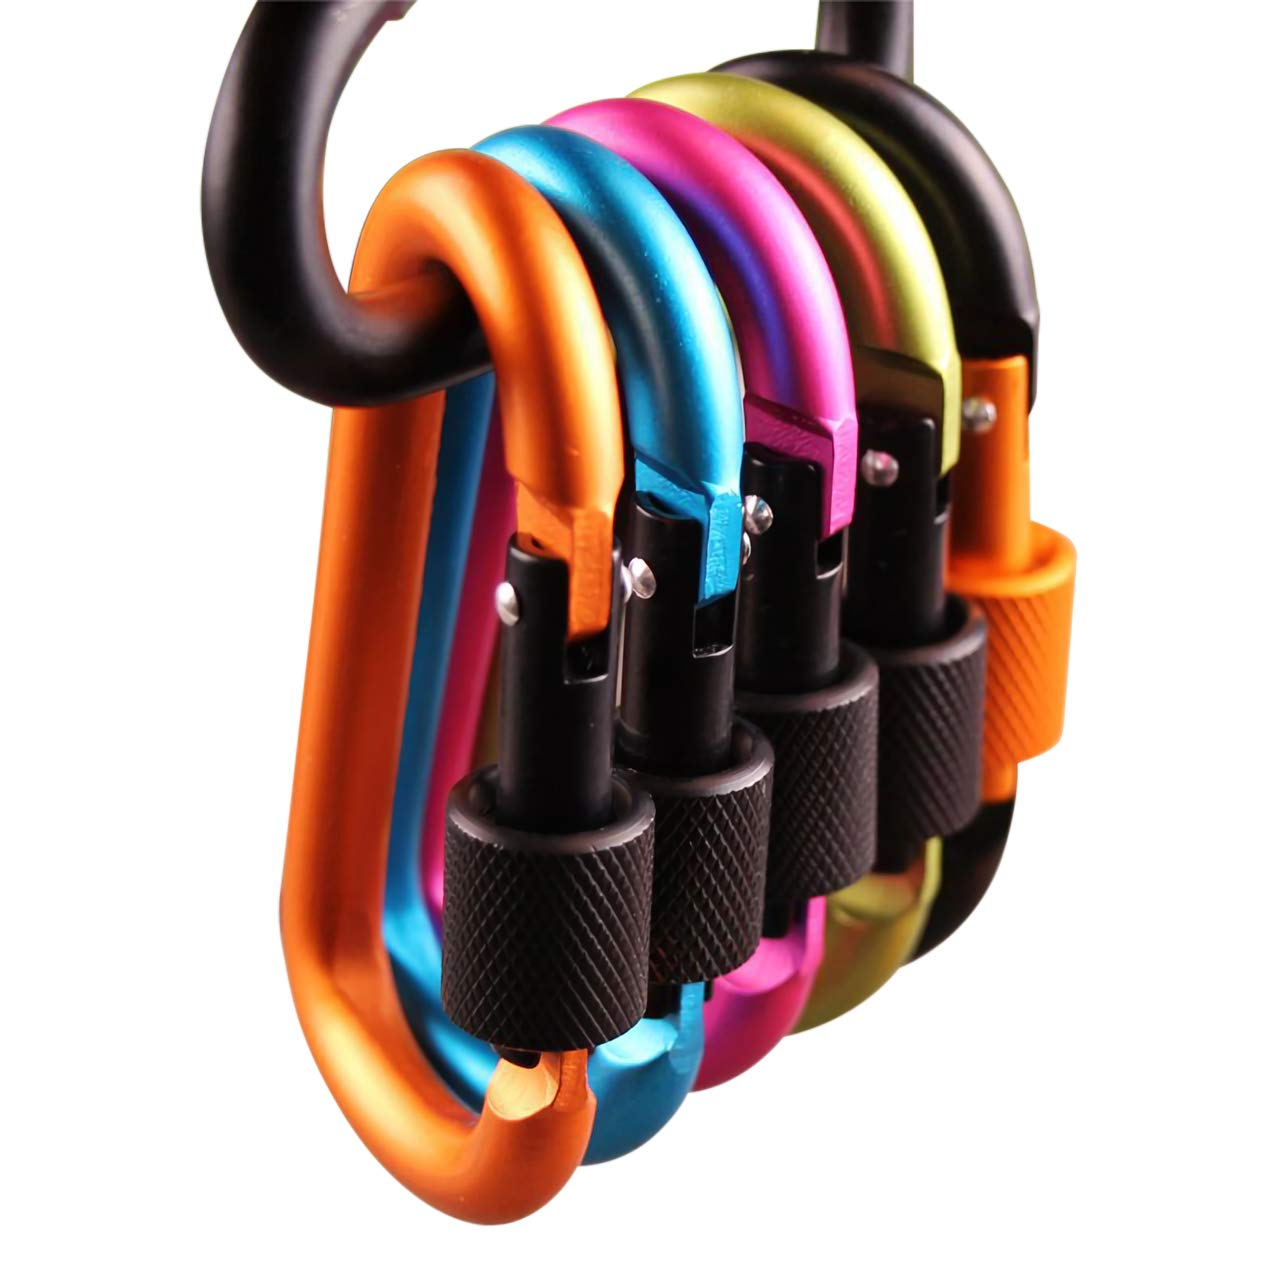 AnFun 10 Pieces Aluminum Carabiner Clip Locking Multi-Purpose D Ring Key Chain Strong Buckle Outdoor Equipment